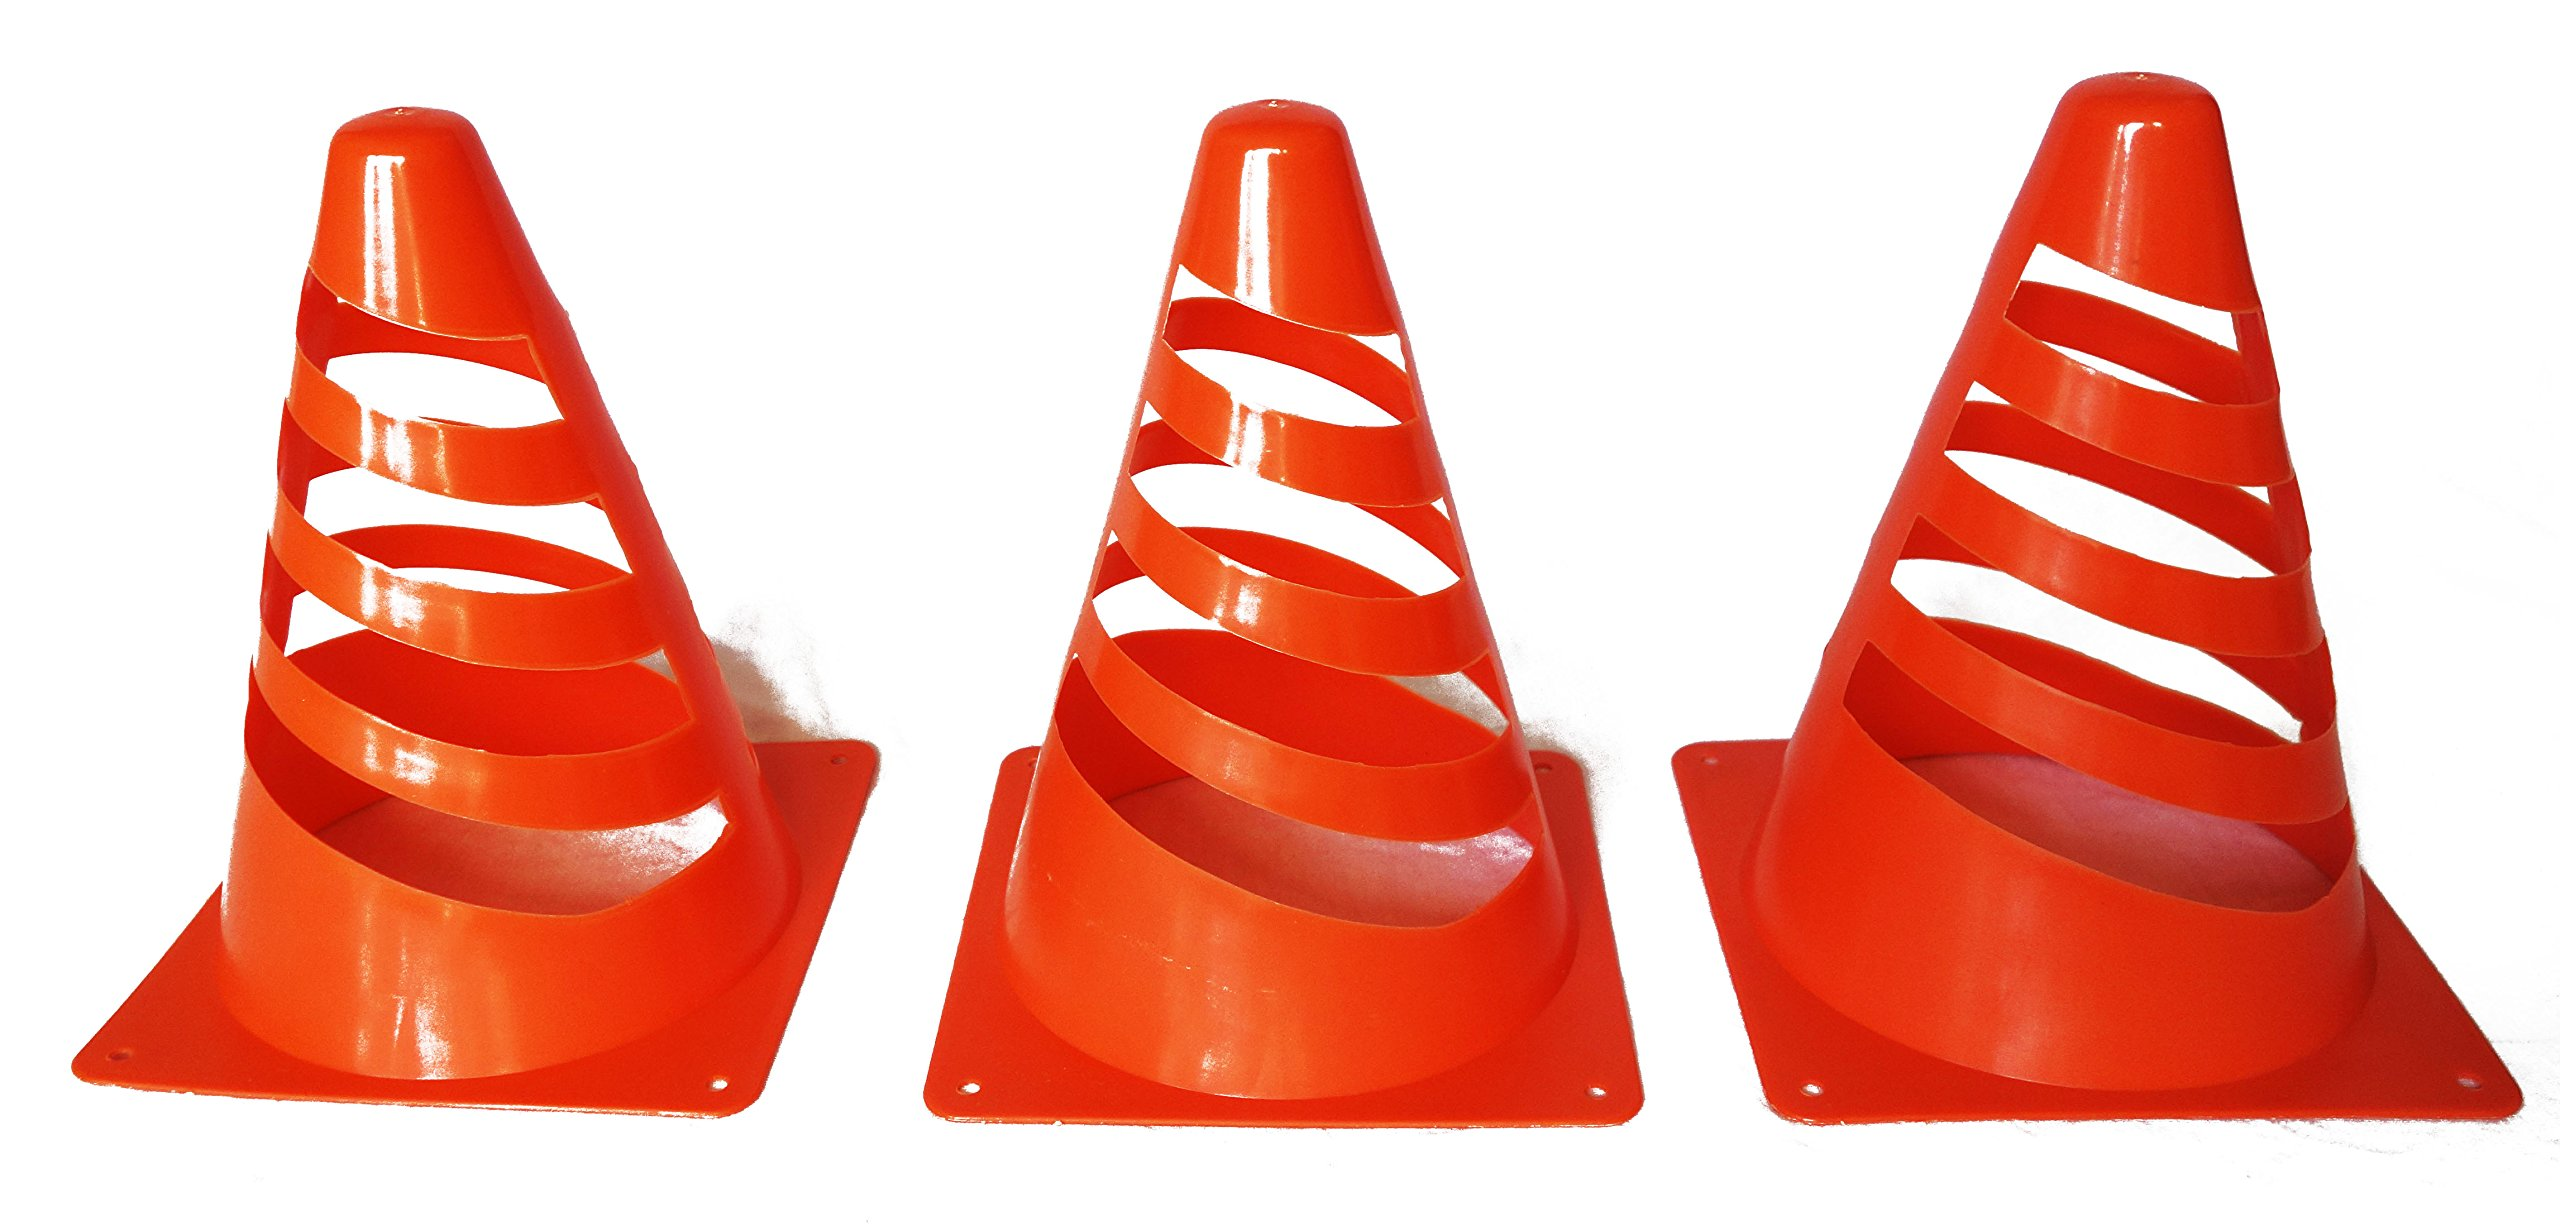 """Sport Mini Cone Set - Bright Orange – Perfect For Outdoor Fun and Safety – 6 Piece Set - 7"""" Tall – Multi-purpose – Agility Training, Soccer, Football, Field Marker – By Qornerstone"""